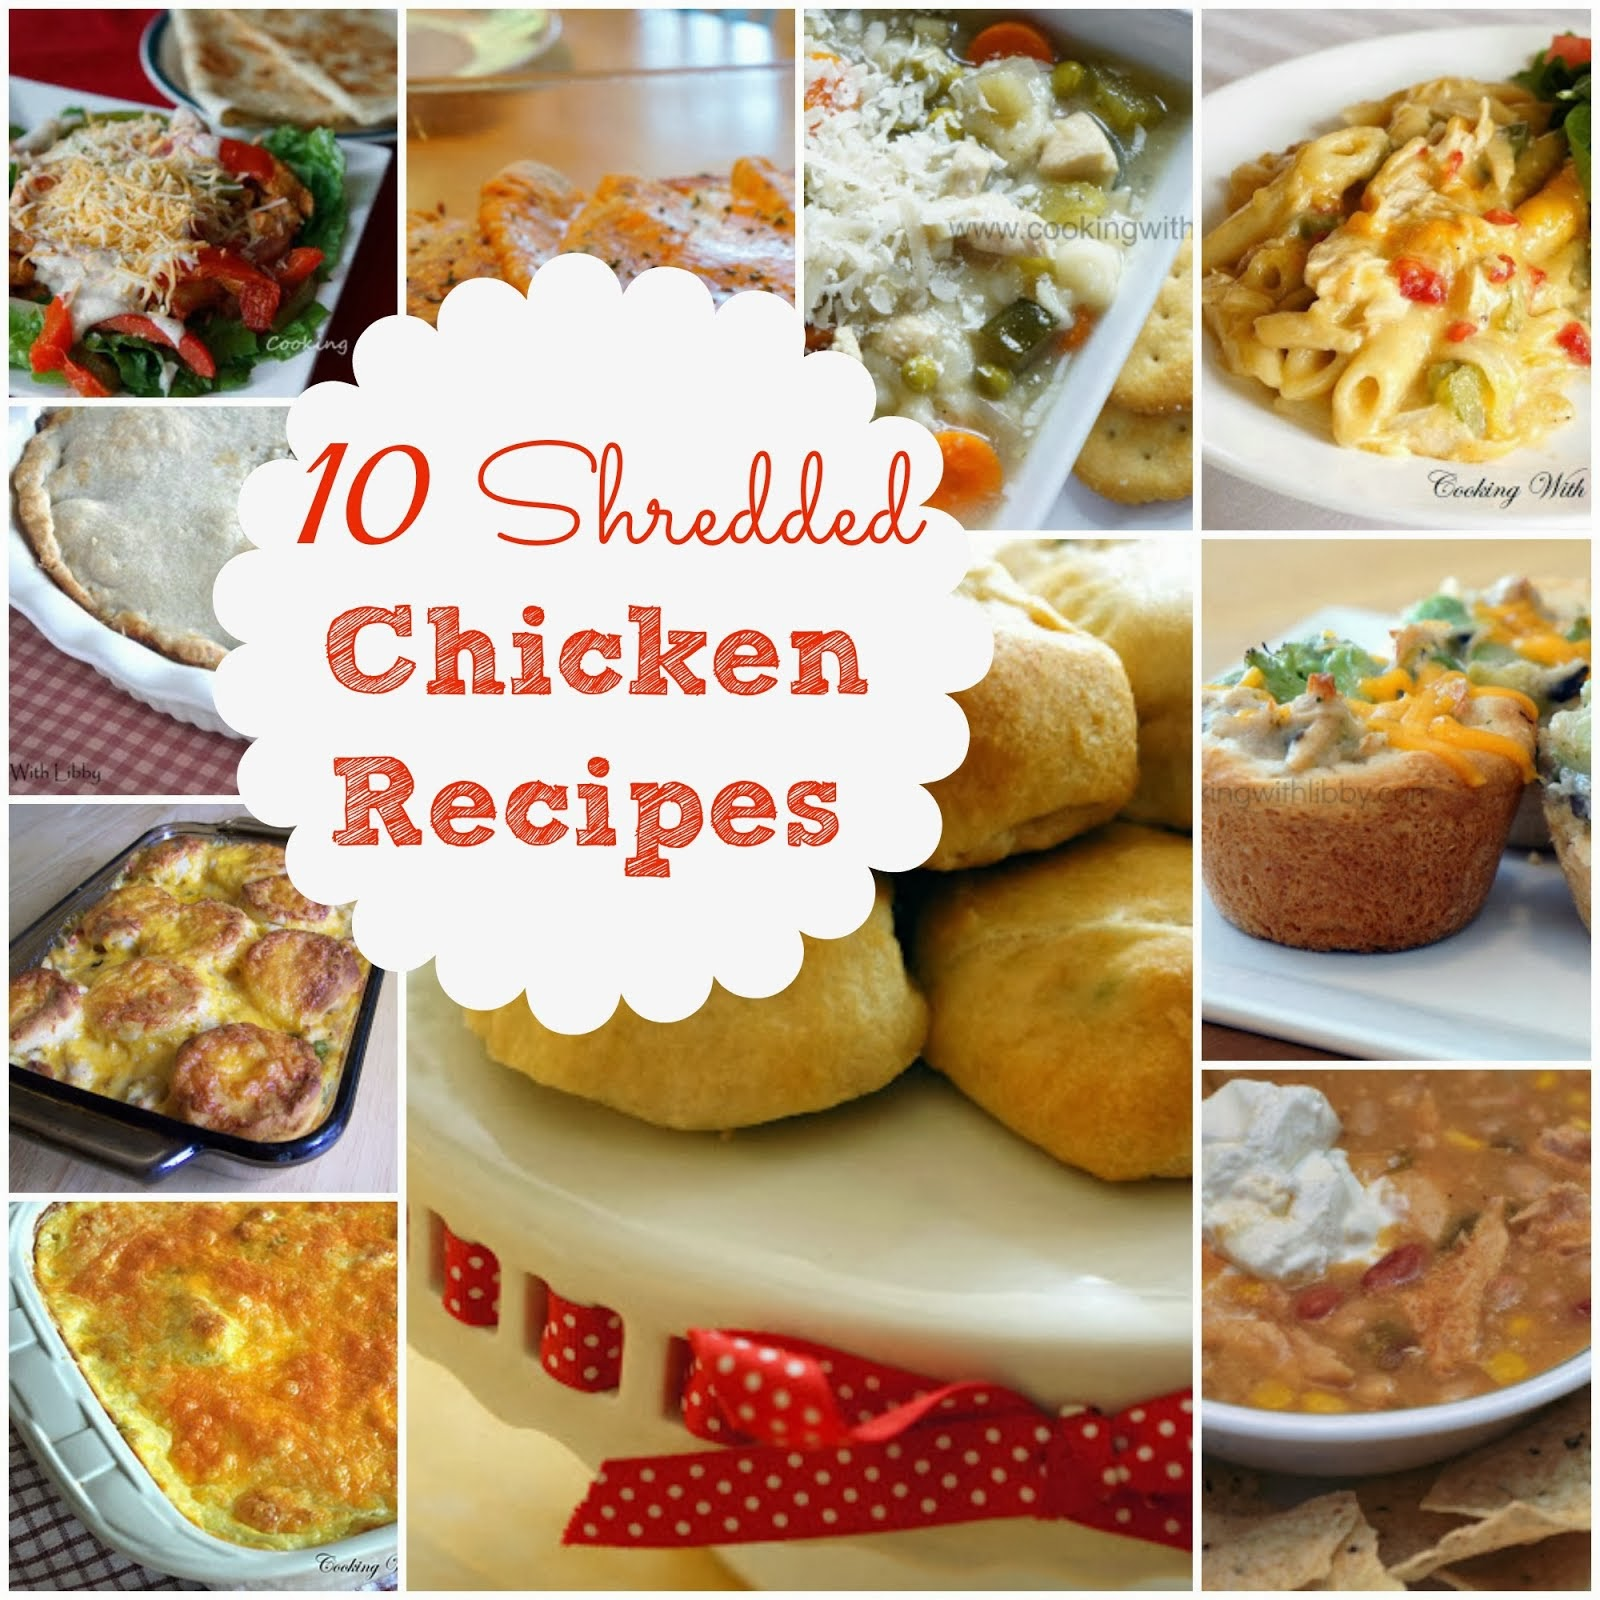 10 Recipes Using Shredded Chicken